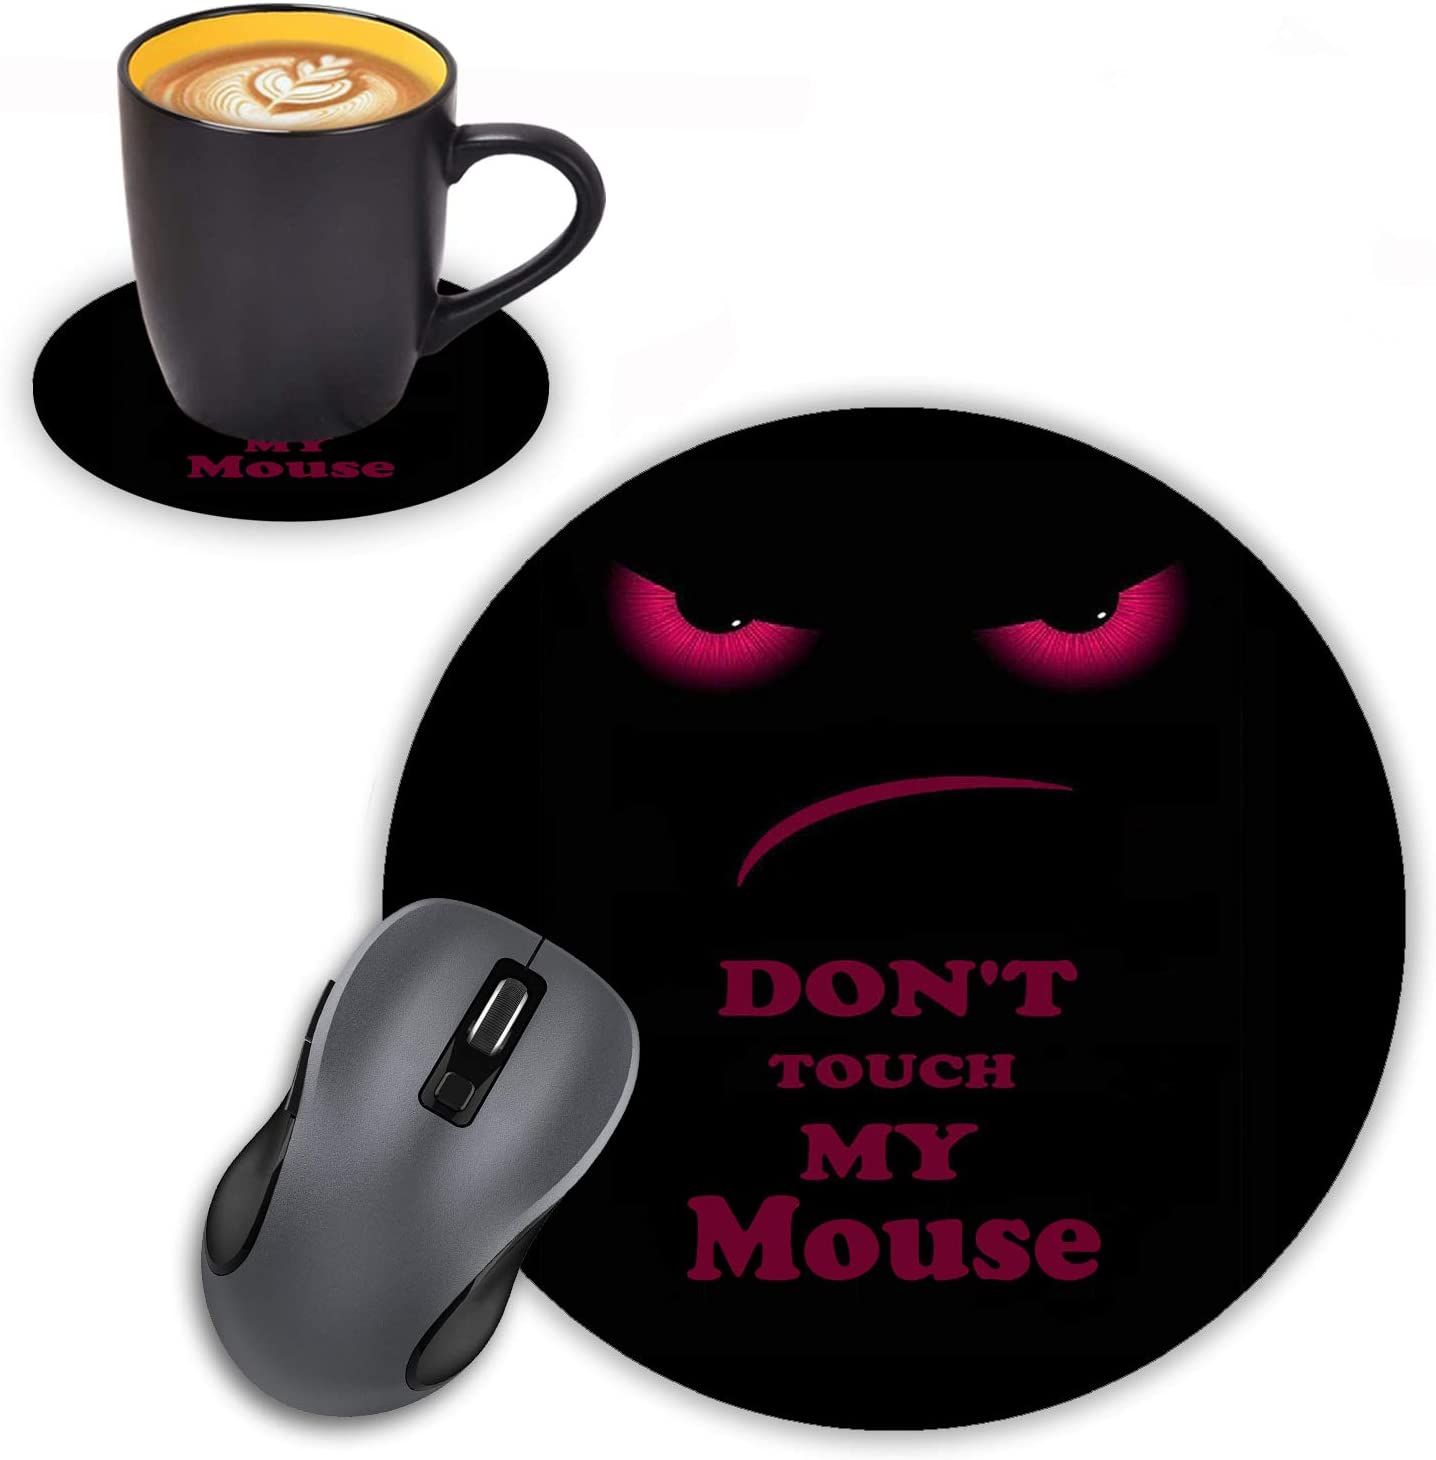 Log Zog Round Mouse Pad with Coasters Set, Don't Touch My Mouse Design Mouse Pad Non-Slip Rubber Mousepad Office Accessories Desk Decor Mouse Pads for Computers Laptop